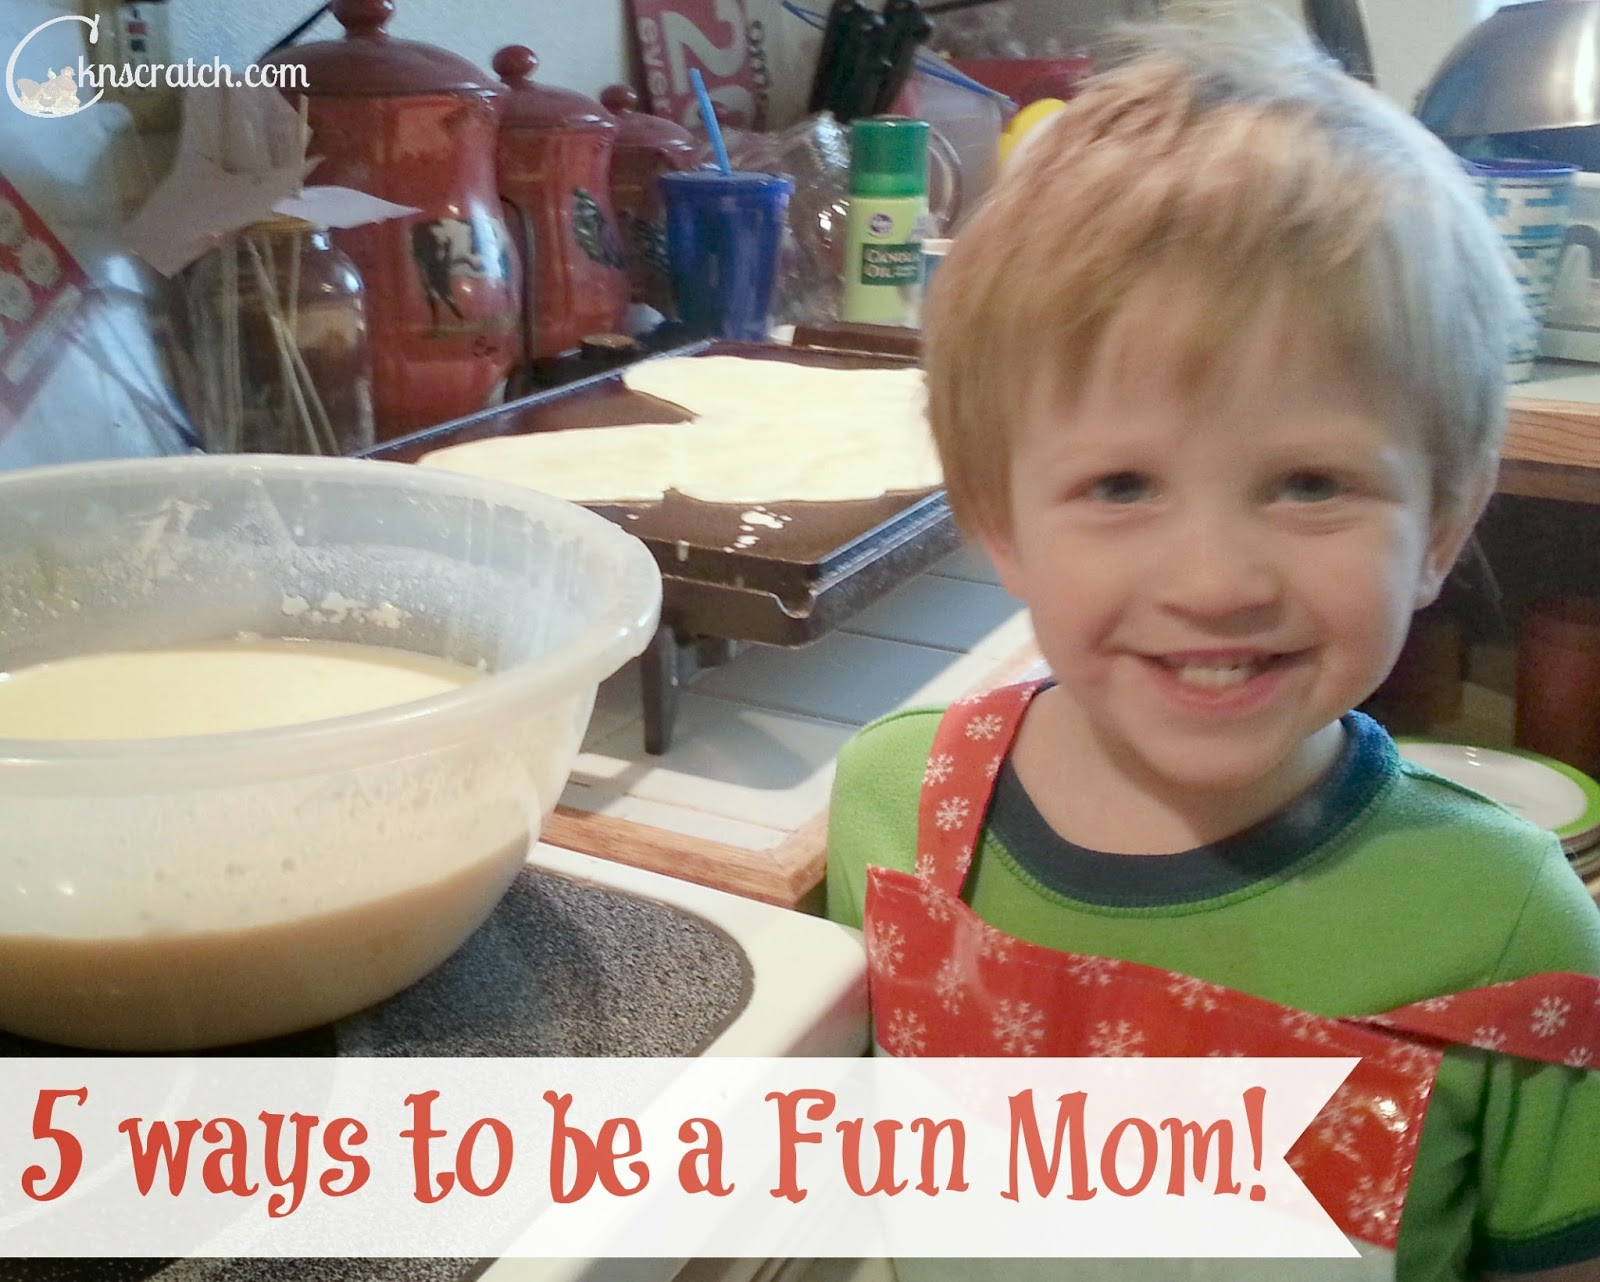 Boy wearing an apron stirs a bowl of pancake mix.  5 Ways to be a Fun Mom! Guest post by Camille Gillham.  @ATIPicalDay #funparenting #sillysuppers #bathroomfun #familybonding #kidactivities